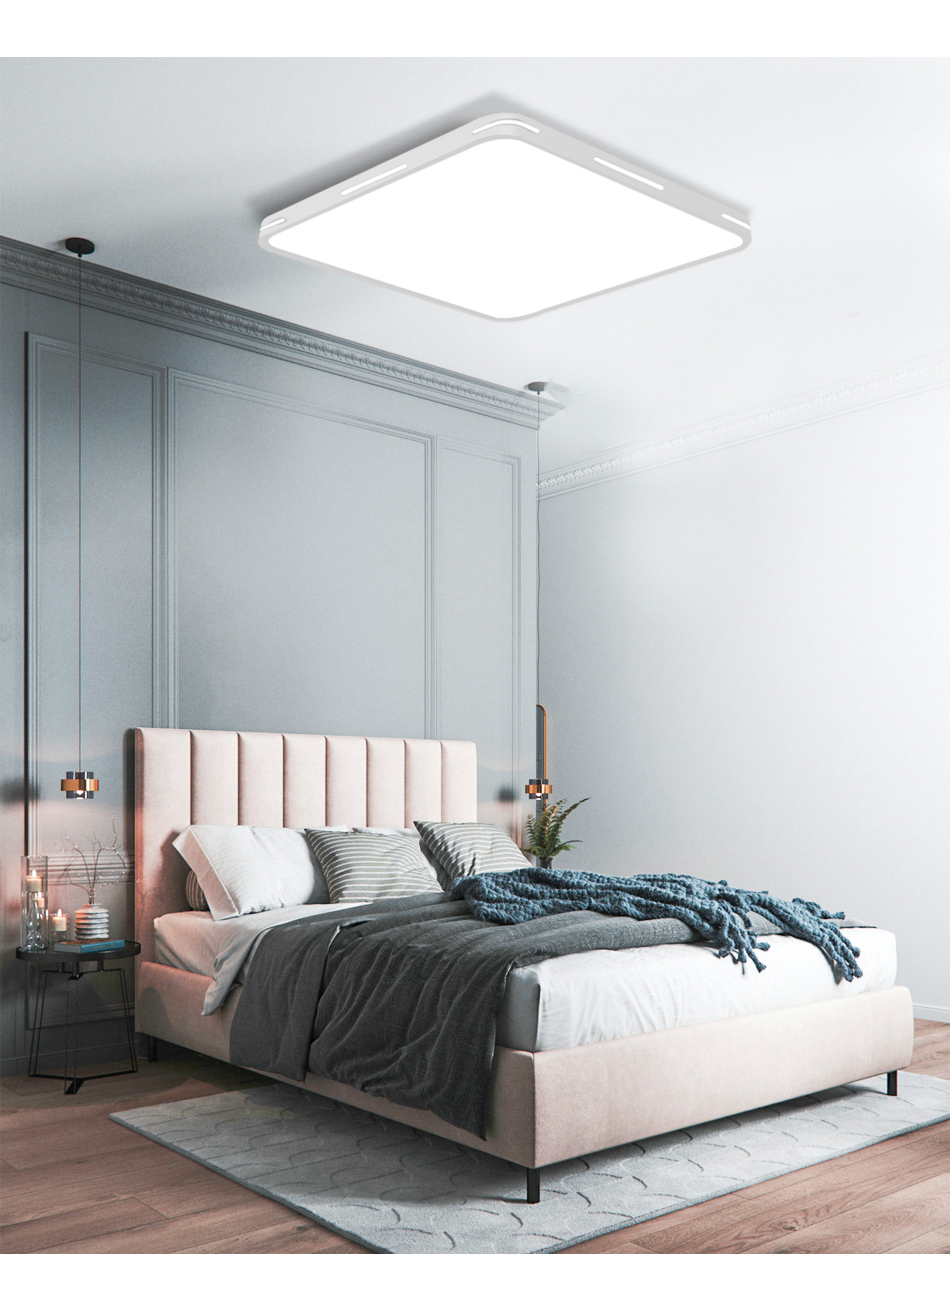 HTB1dtyiXebviK0jSZFNq6yApXXa8 Modern LED Ceiling Light Lamp Lighting Fixture Surface Mount Flush Remote Control Dimmable 18W 48W Living Room Bedroom Balcony